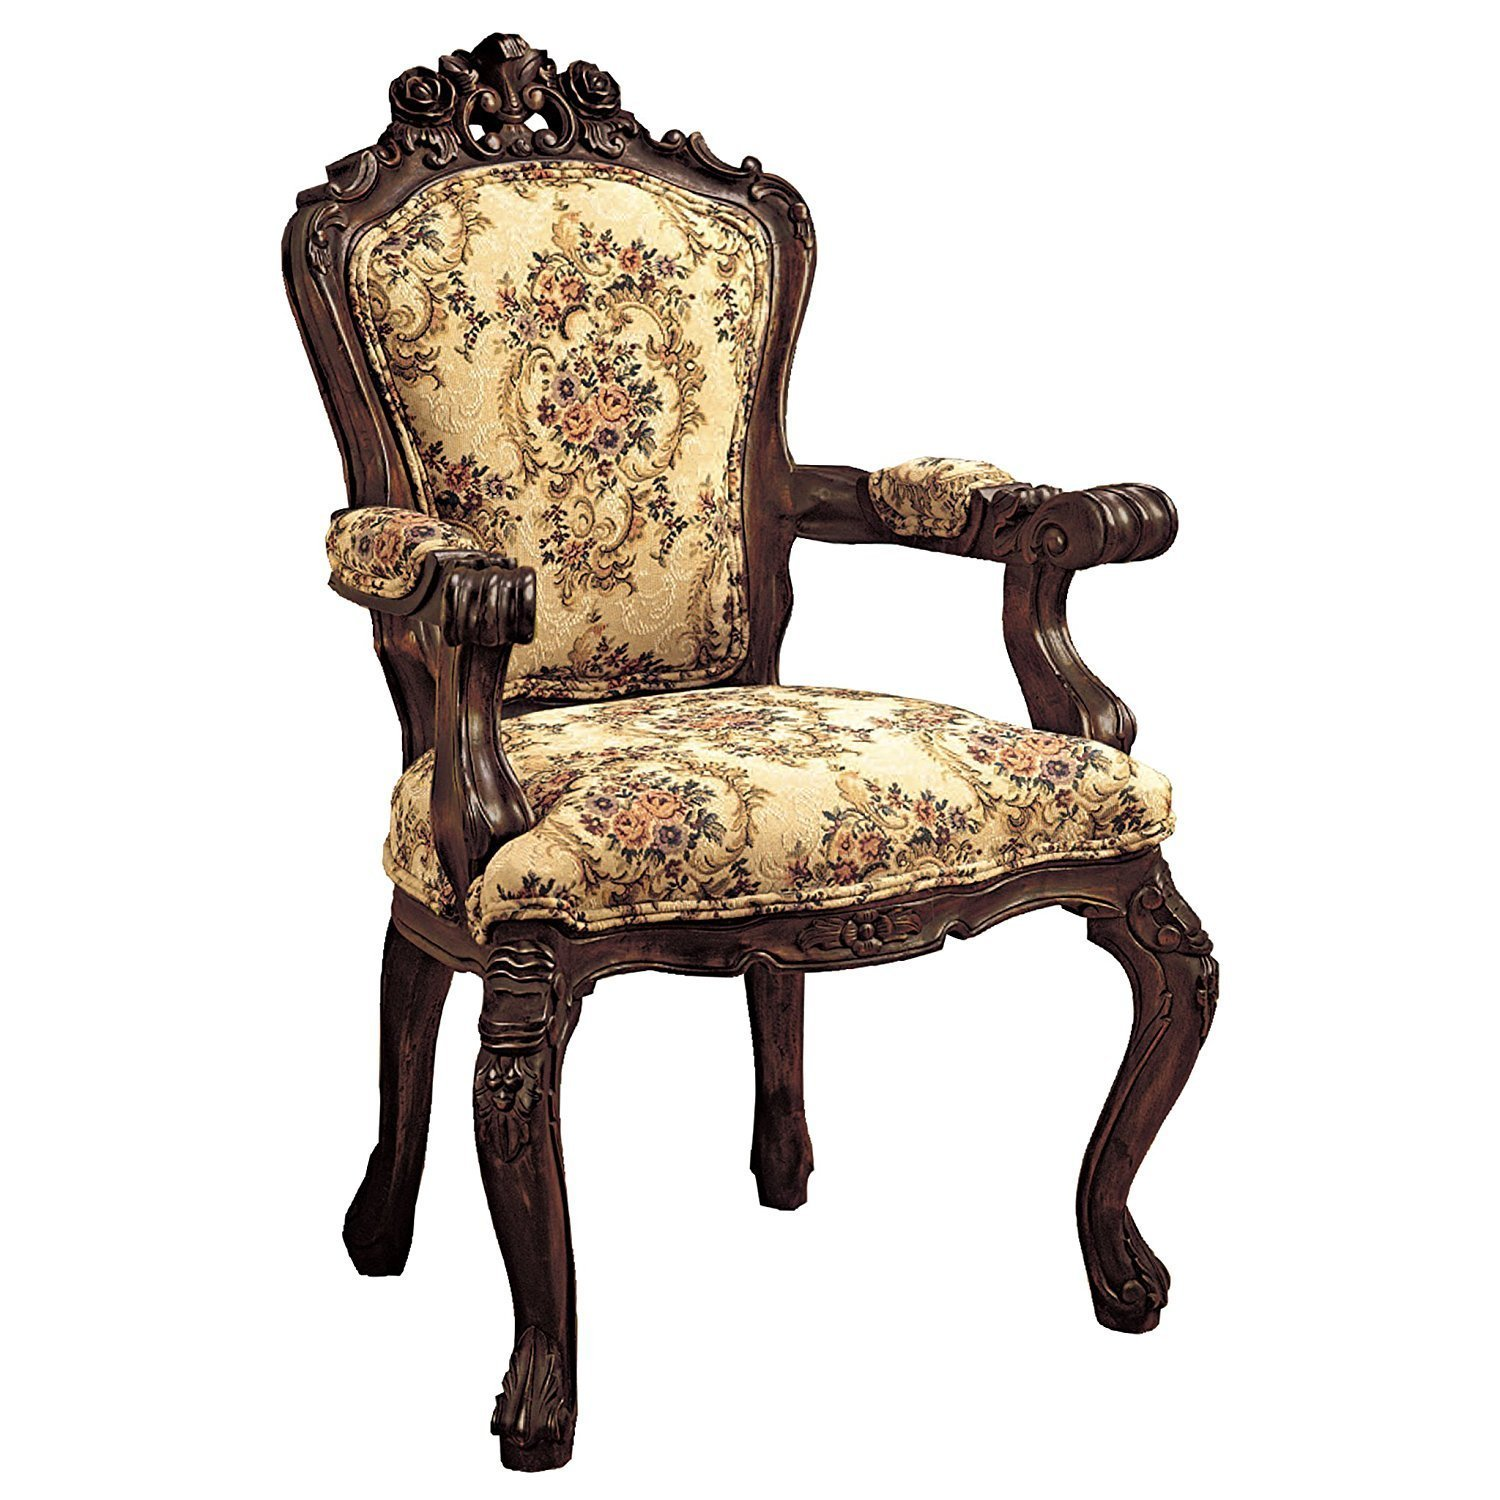 Design Toscano Carved Rocaille Fabric Arm Chair Home